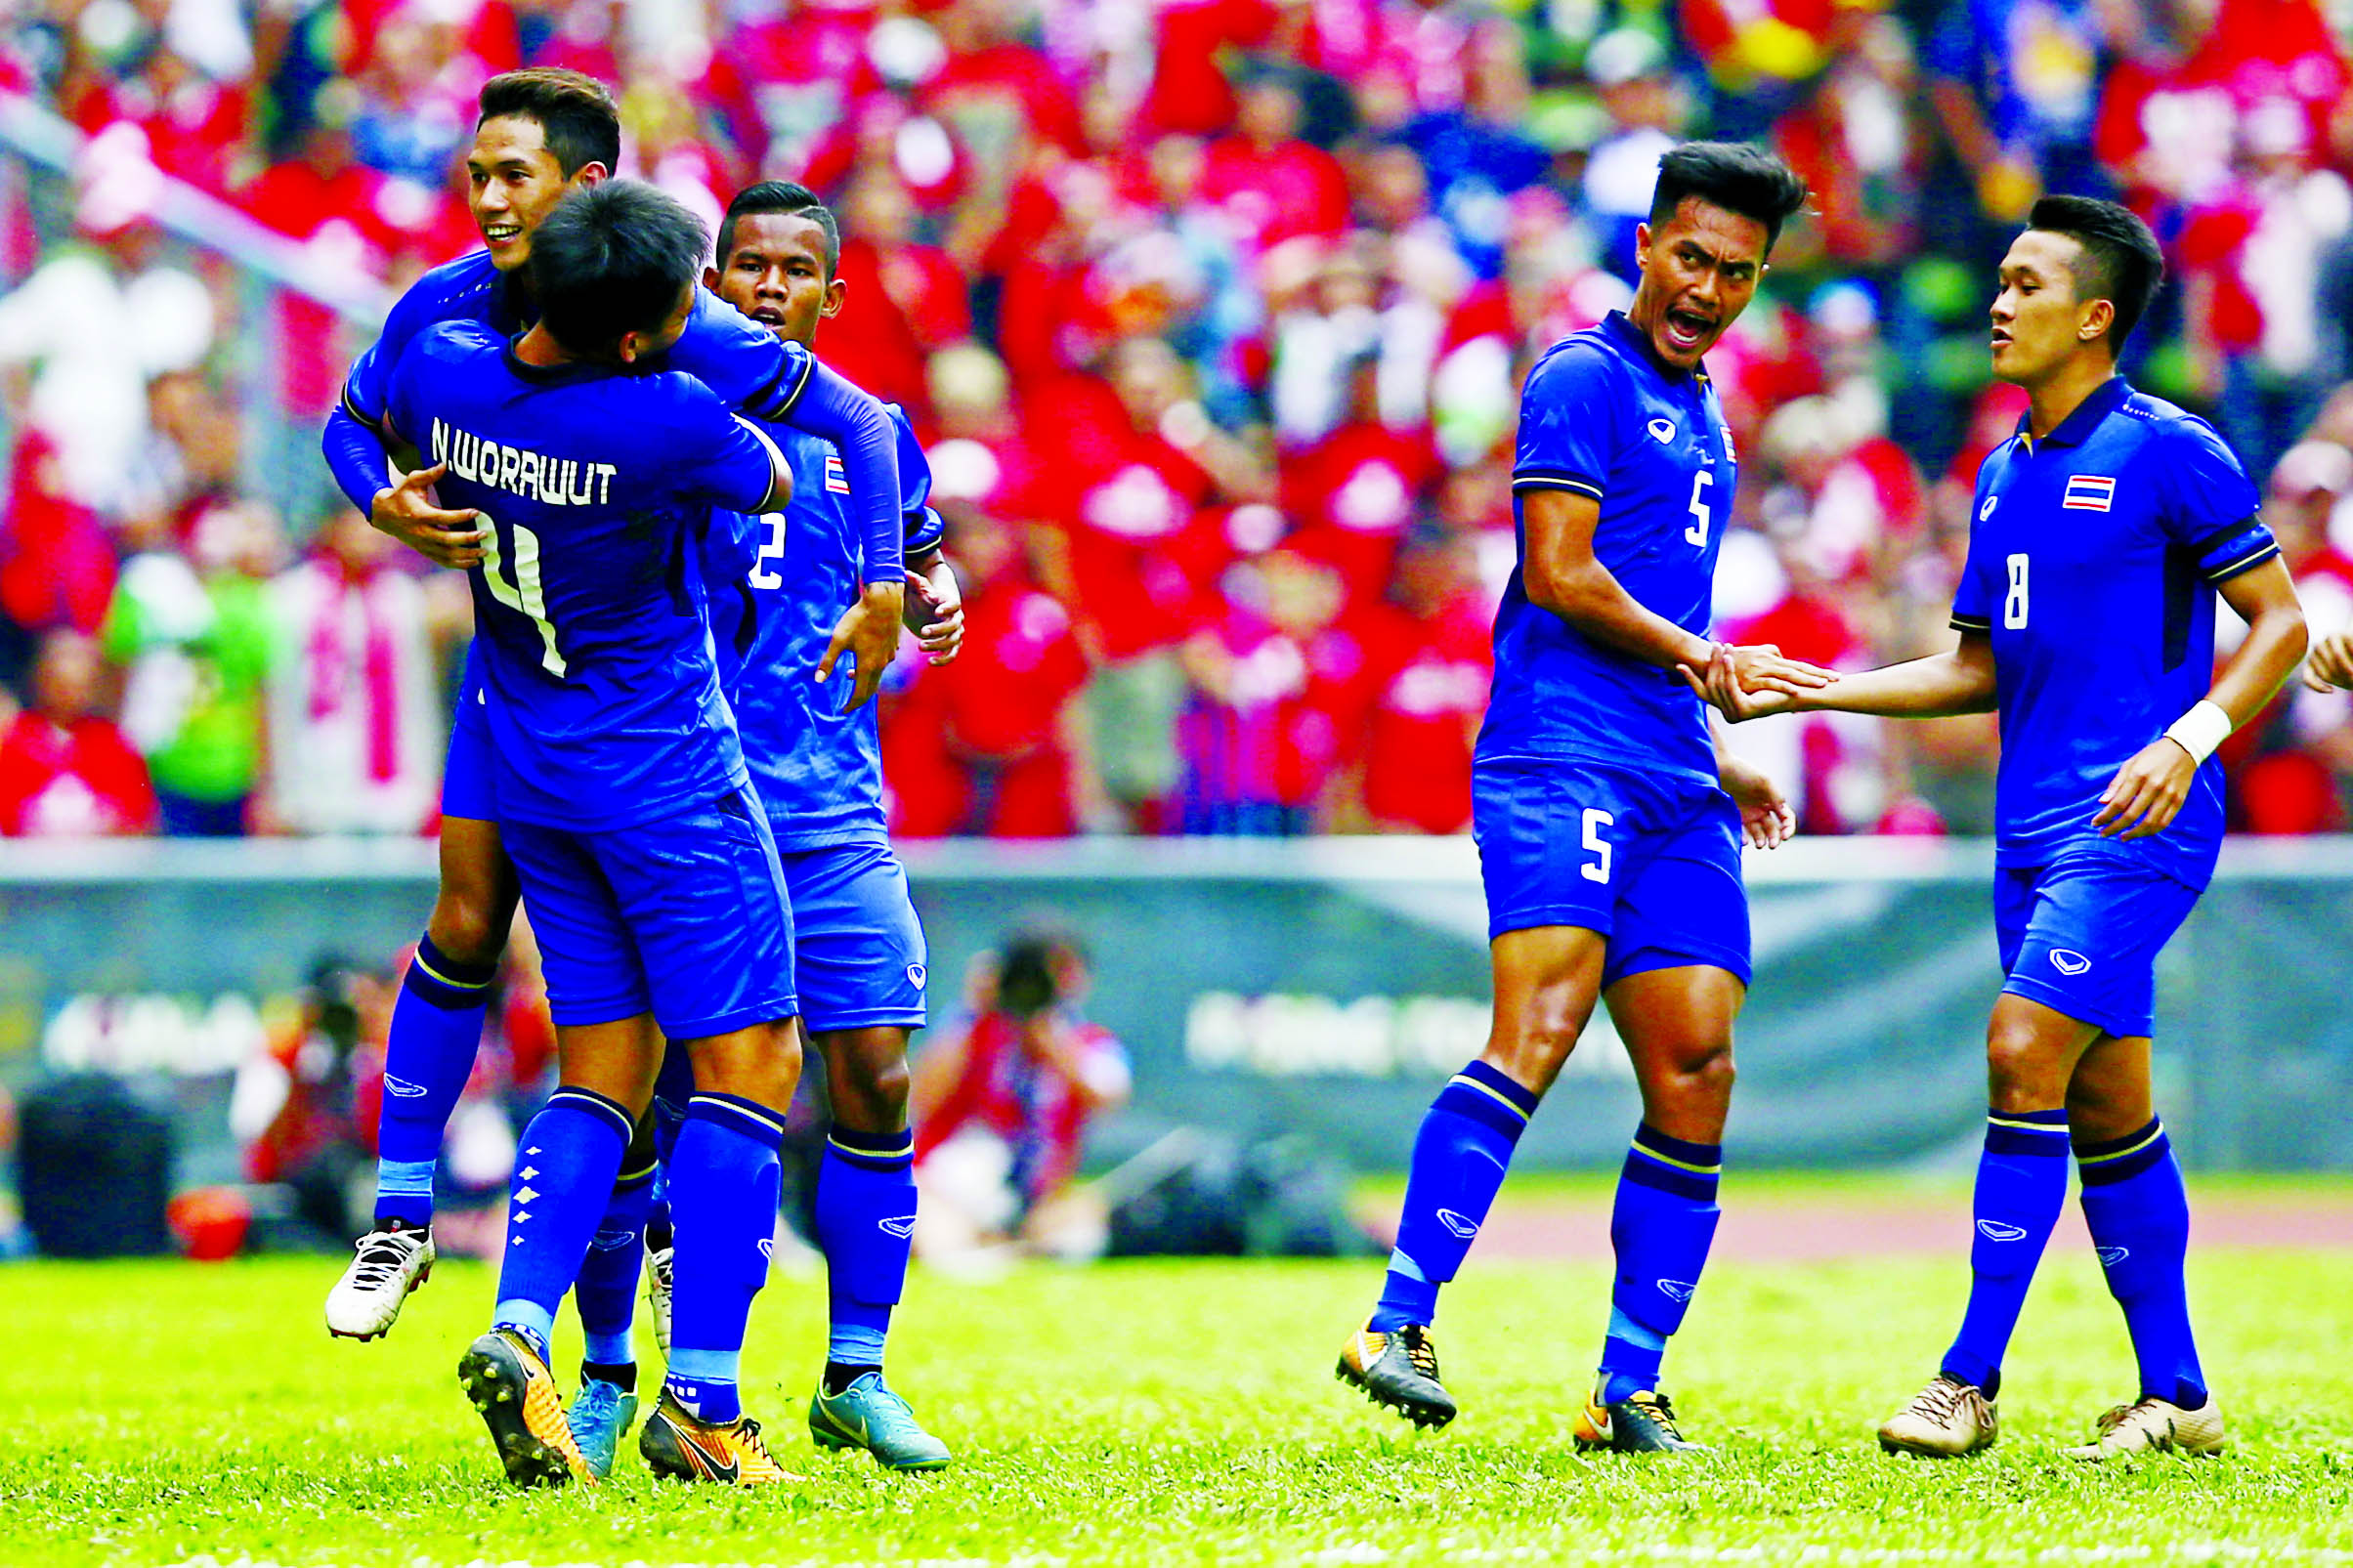 Thailand`s Chaiyawat Buran (left) celebrates after scoring a goal against Indonesia during the soccer match at the South East Asian Games in Shah Alam, Malaysia on Tuesday.